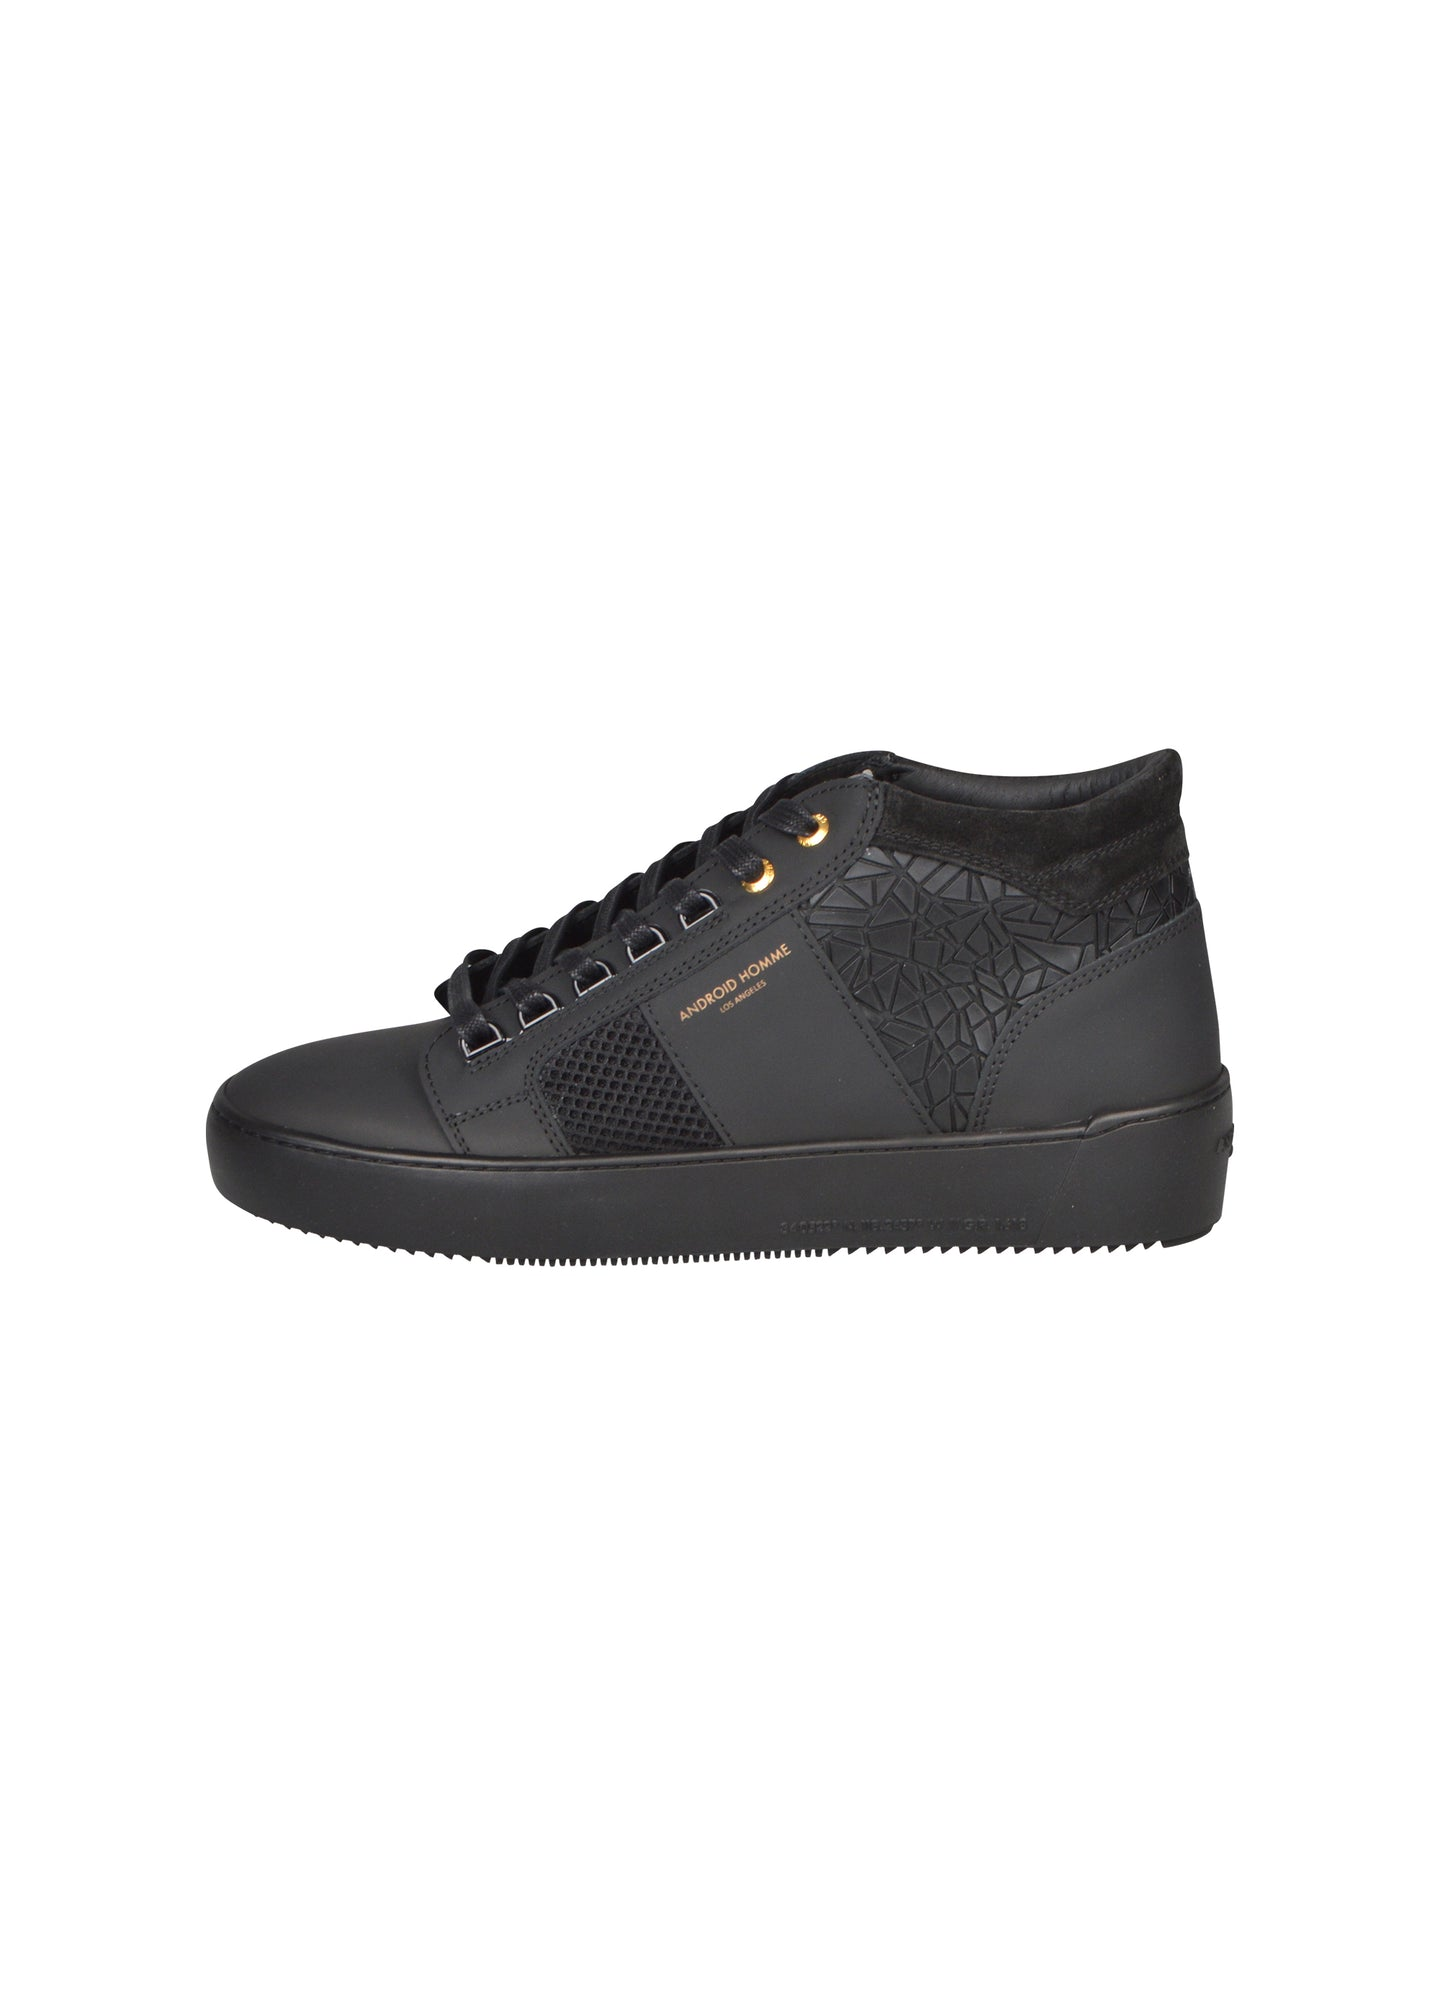 Android Homme - Propulsion Mid Top Black Rubber Mosaic - AHP19307 - Black